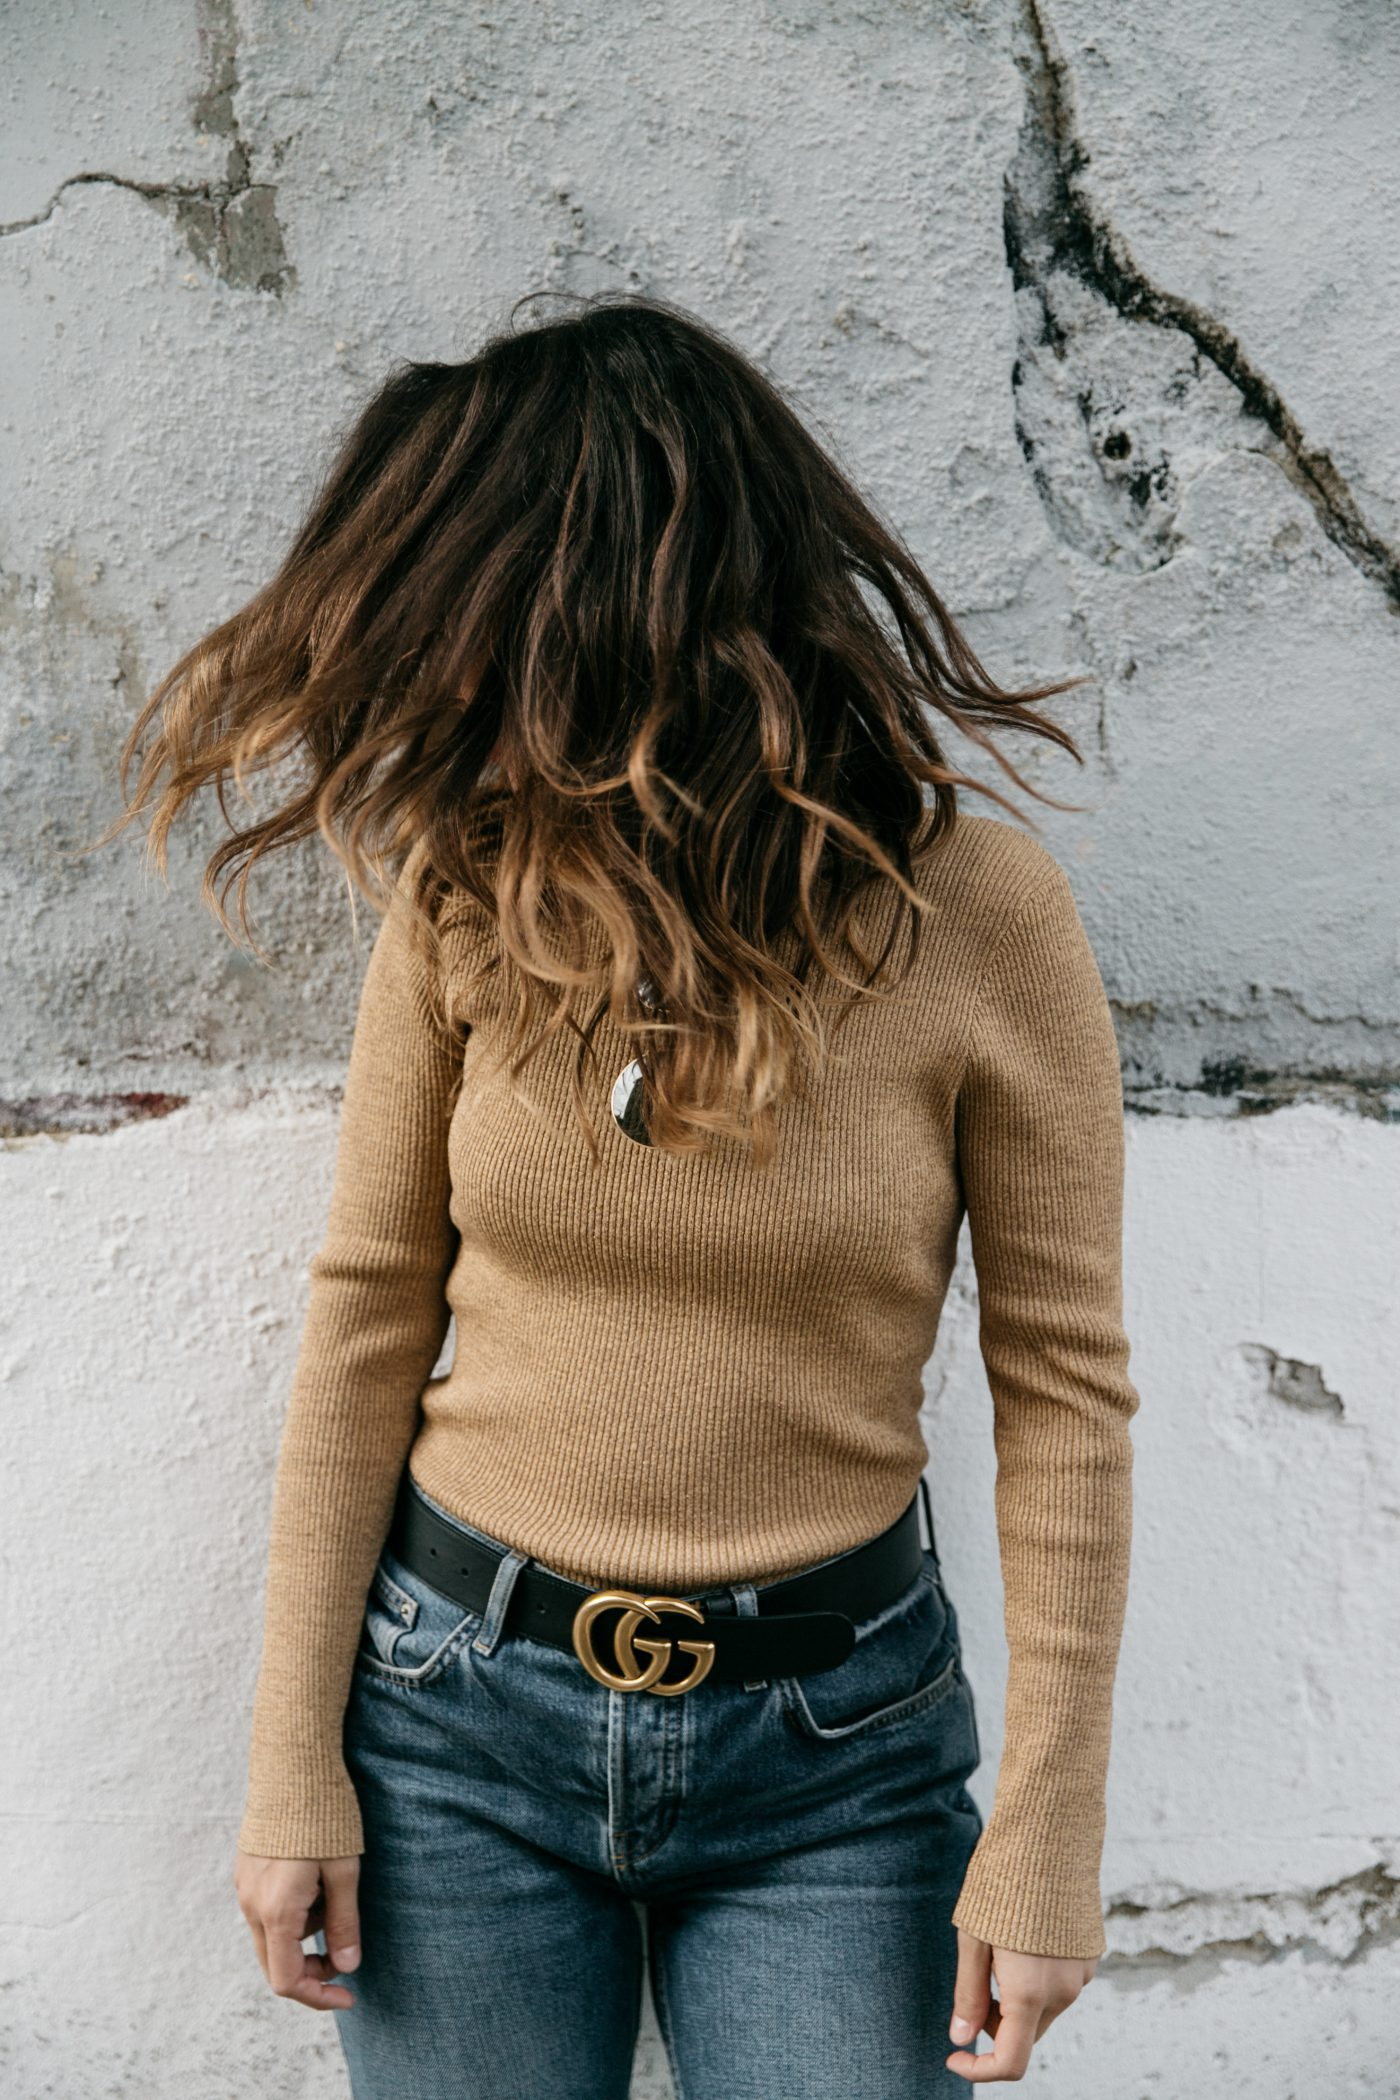 Metallic_Sweater-Cameo_The_Label-Melie-Lisboa-Denim-Topshop-Gucci_Belt-Saint_Laurent_Sneakers-Outfit-Street_Style-55